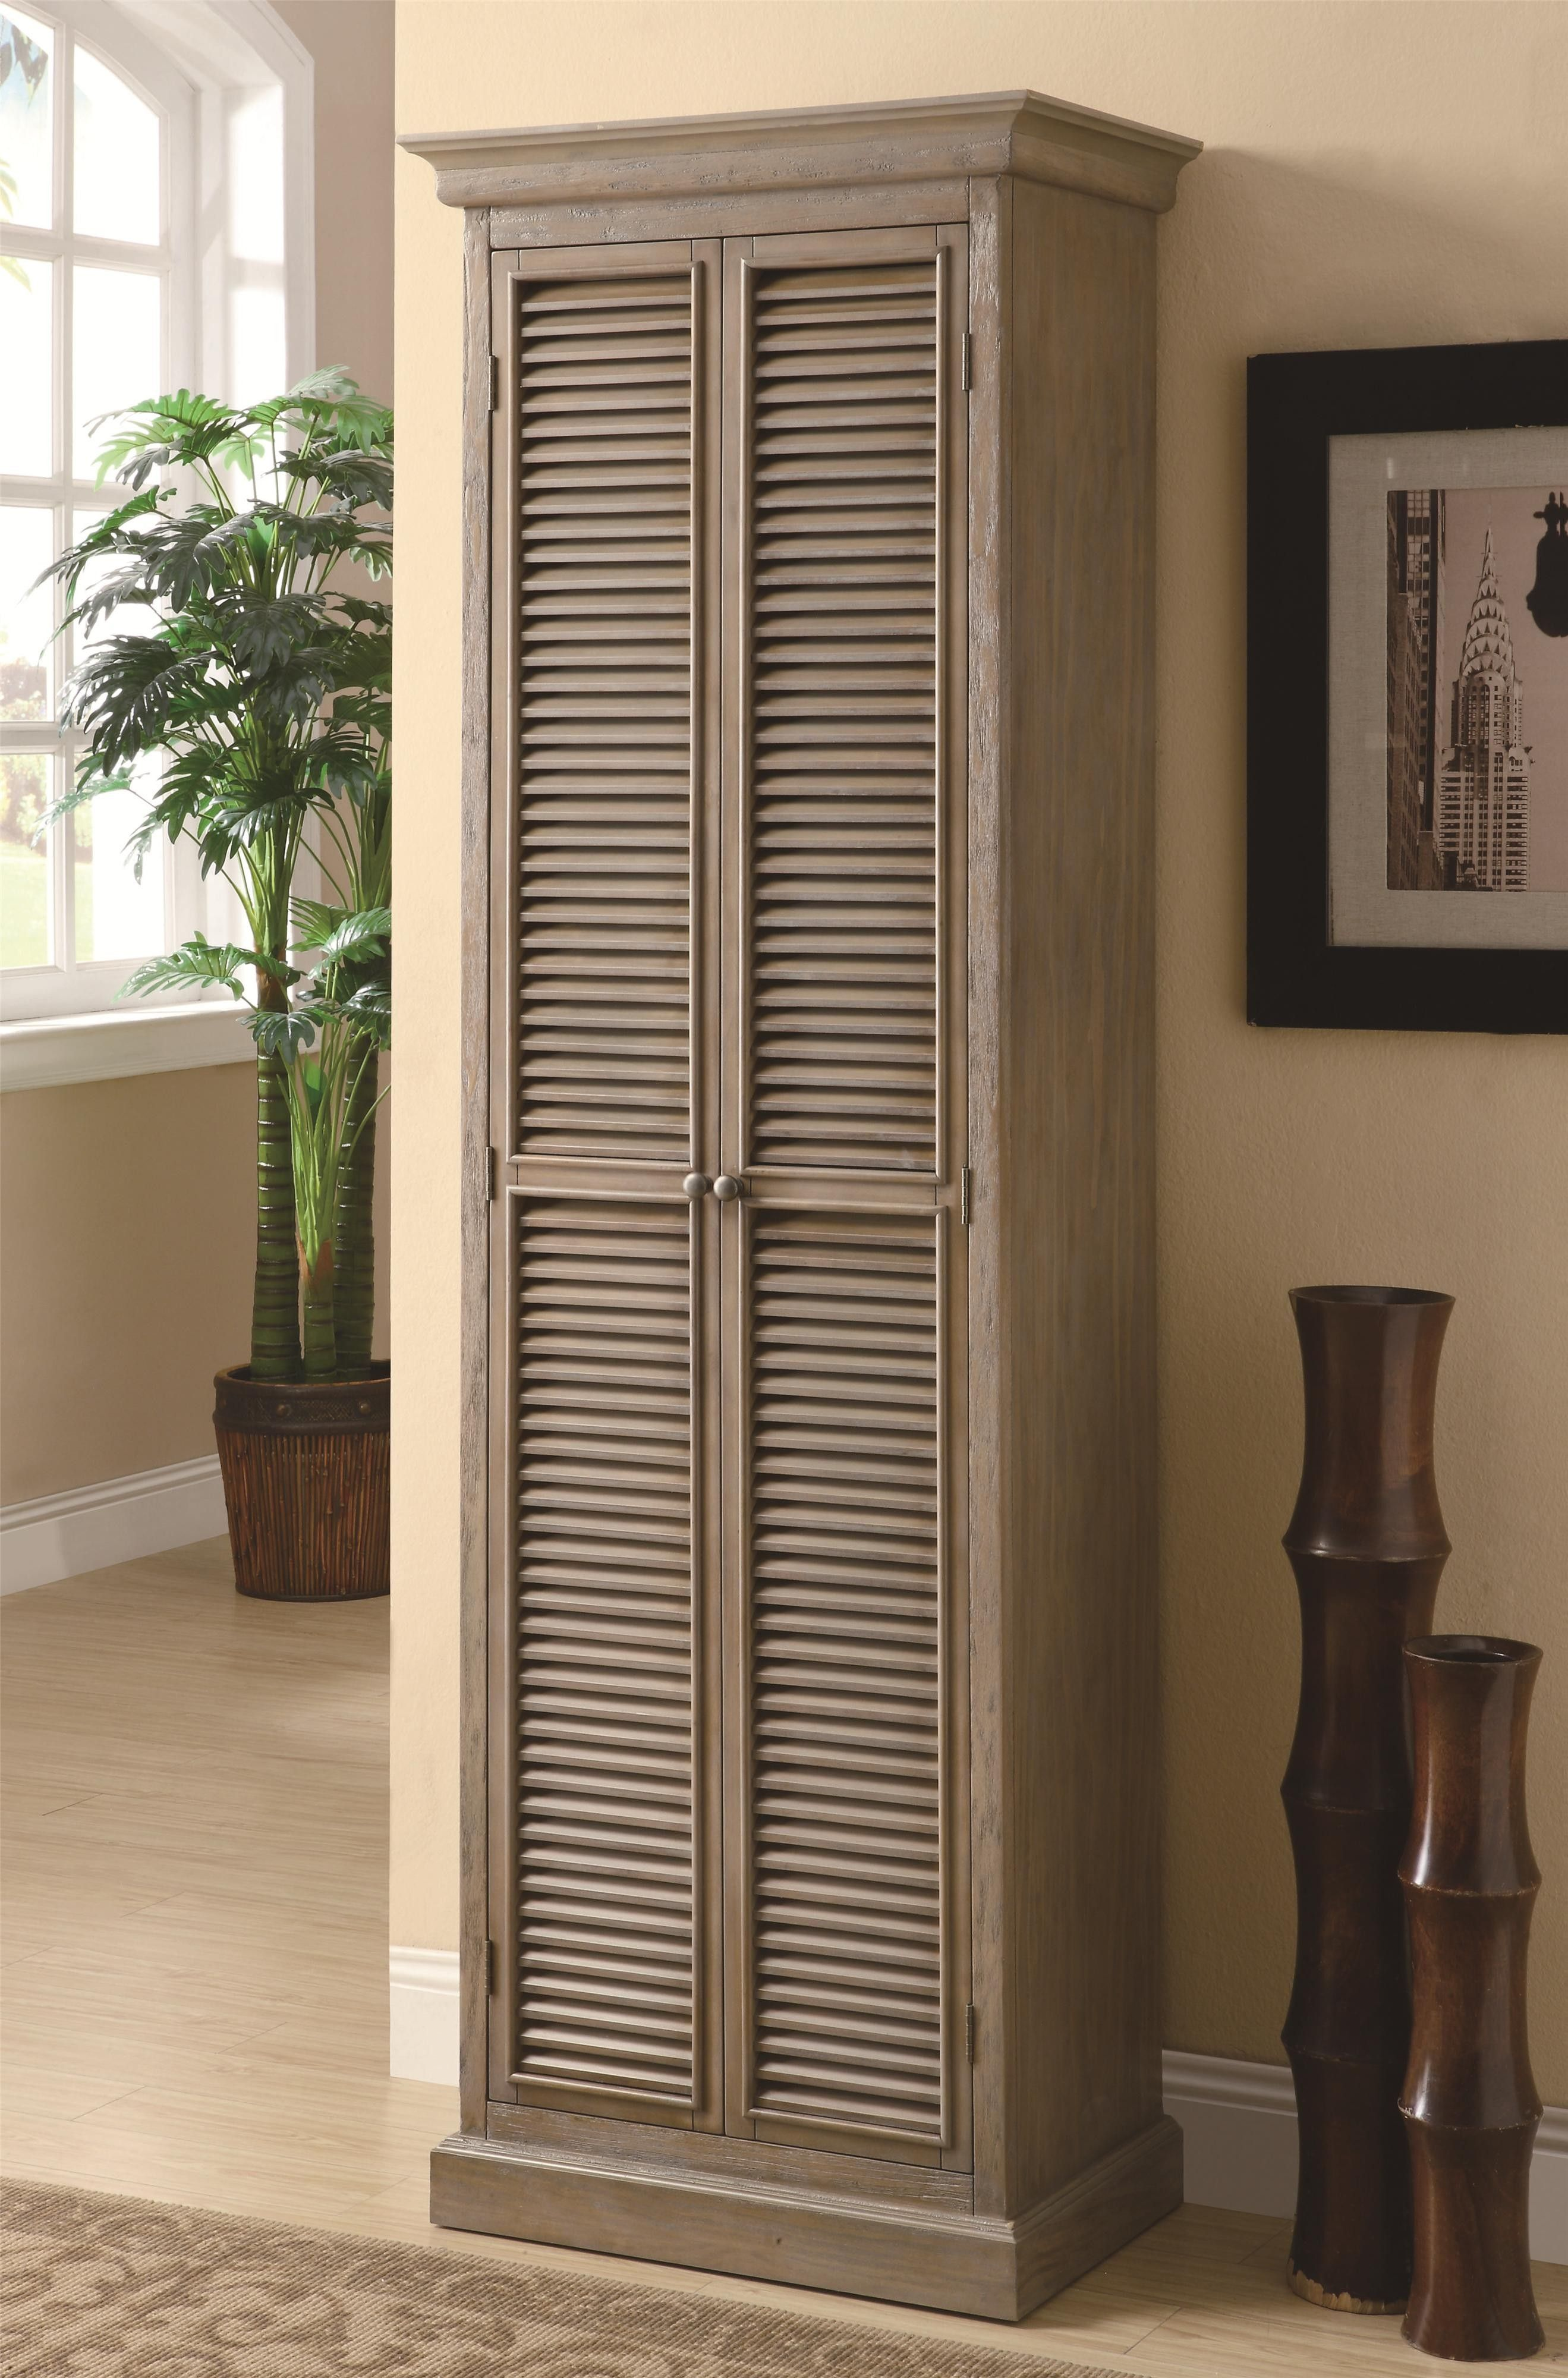 Tall Narrow Storage Cabinets With Doors We All Need Storage